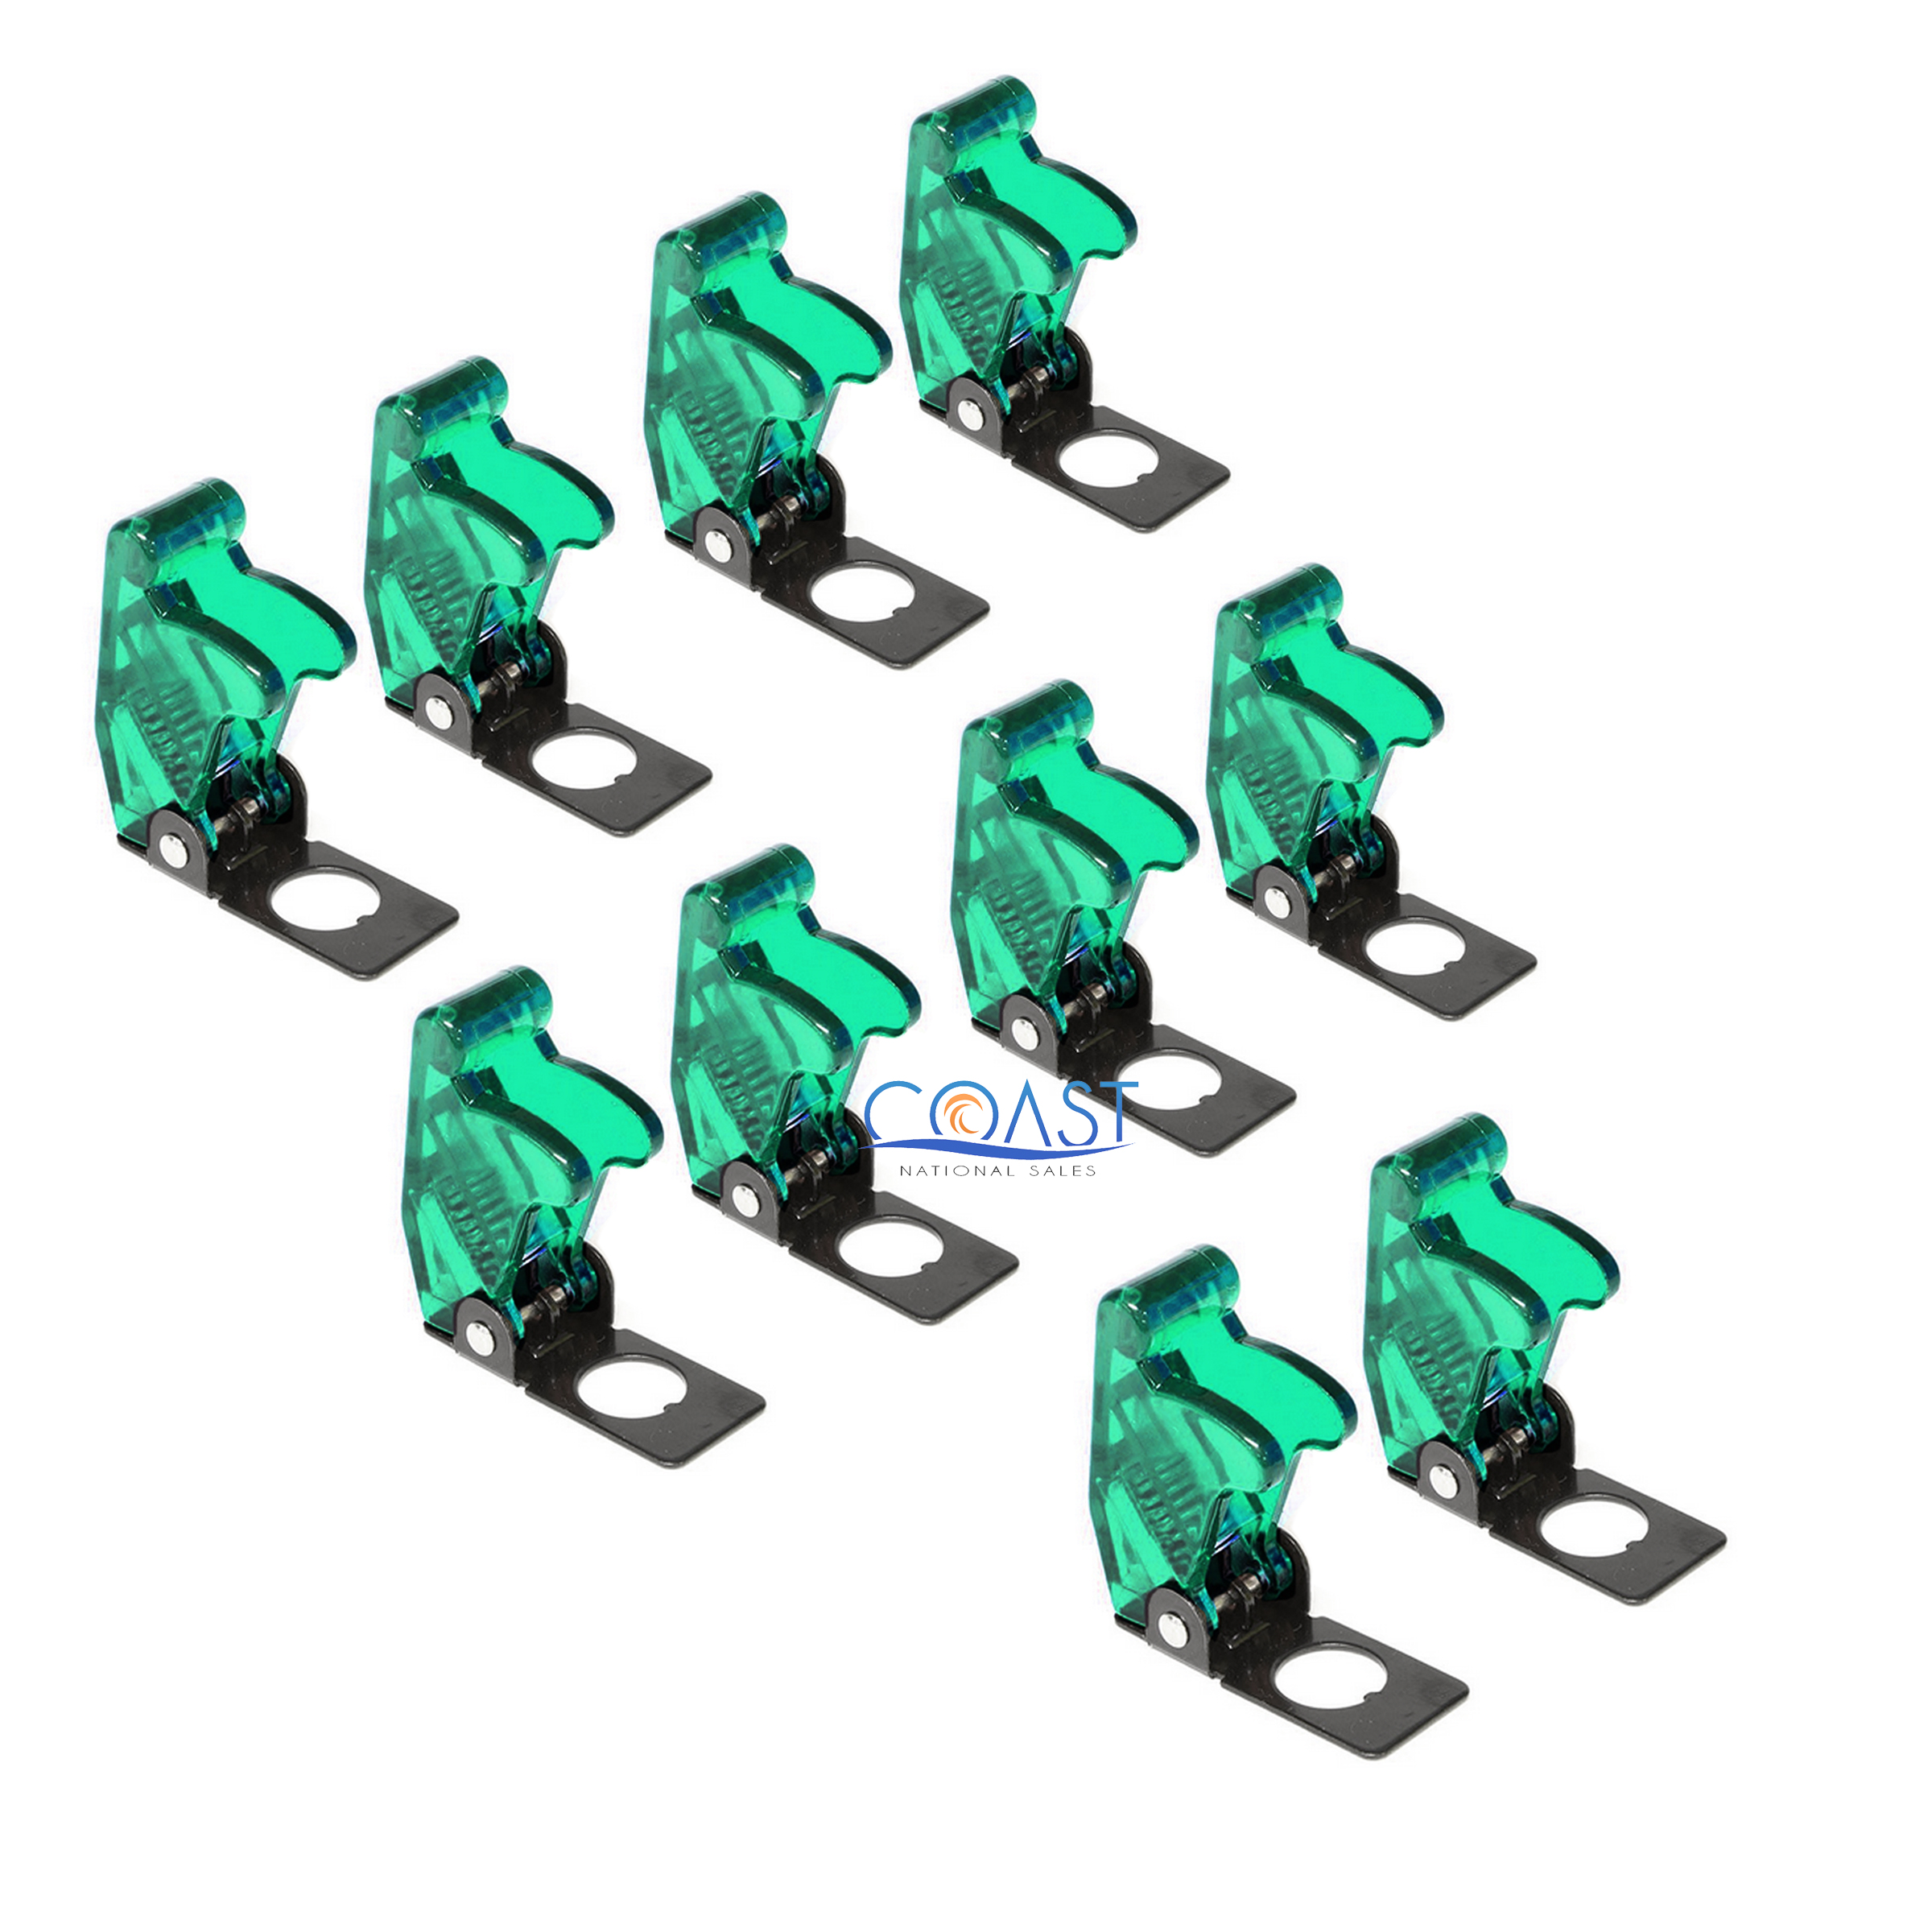 Clear 10X Car Marine Industrial Spring-Loaded Toggle Switch Safety Cover